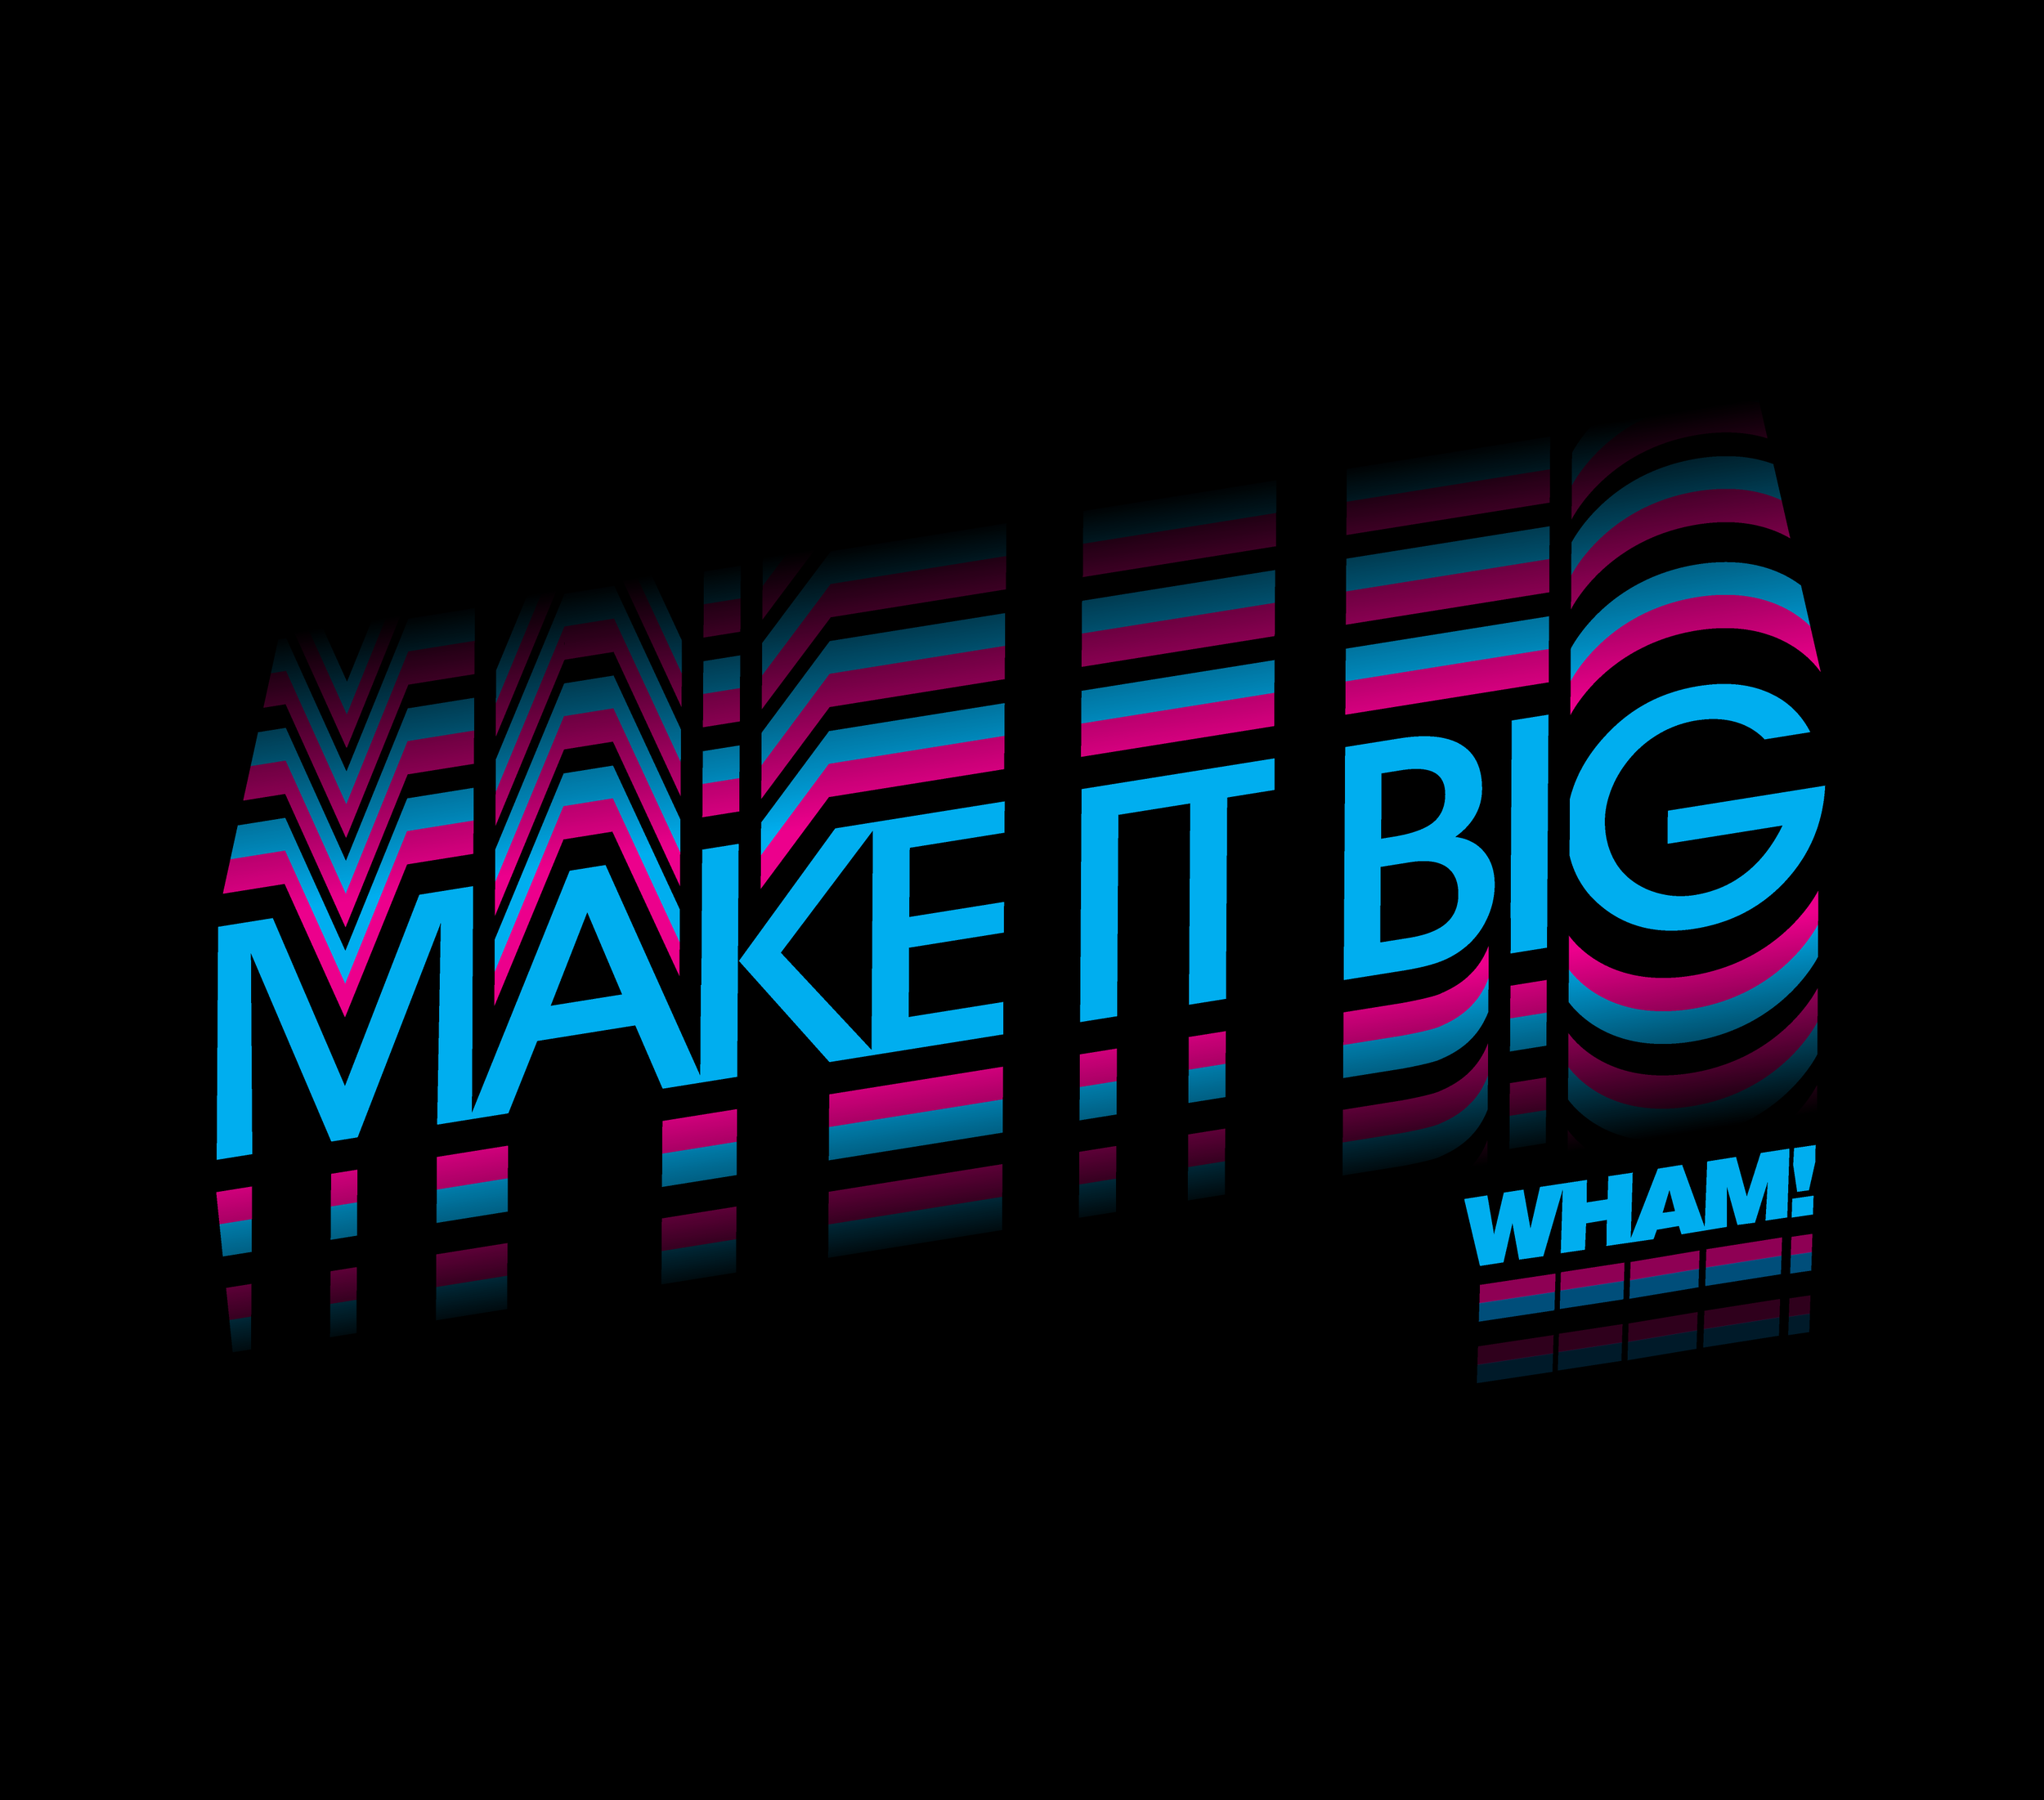 Wham_Graphic_05.png